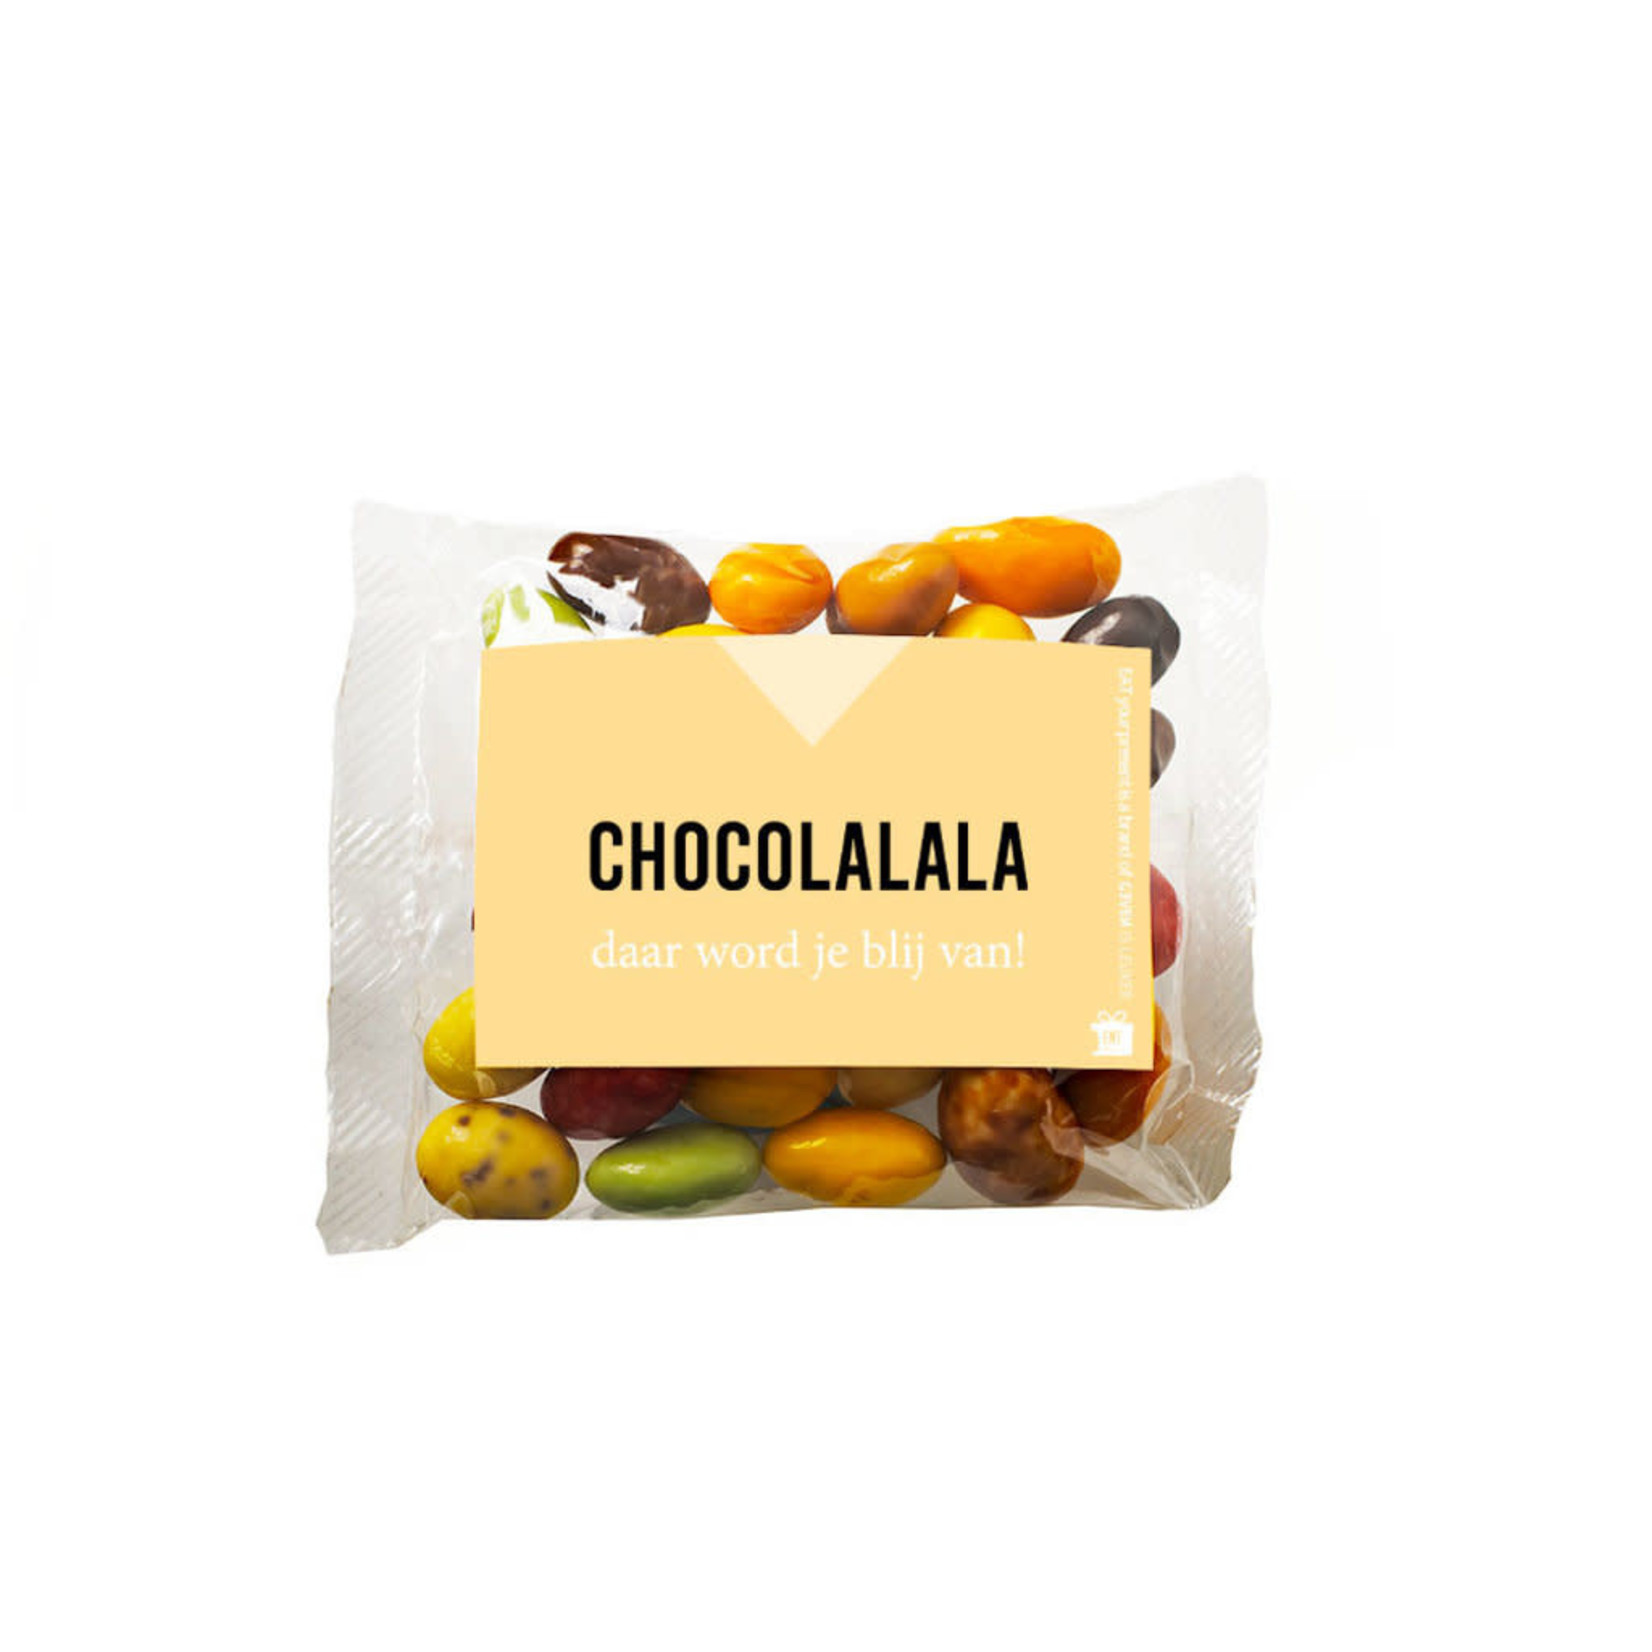 Eat your present Eat your present   Chocolalala